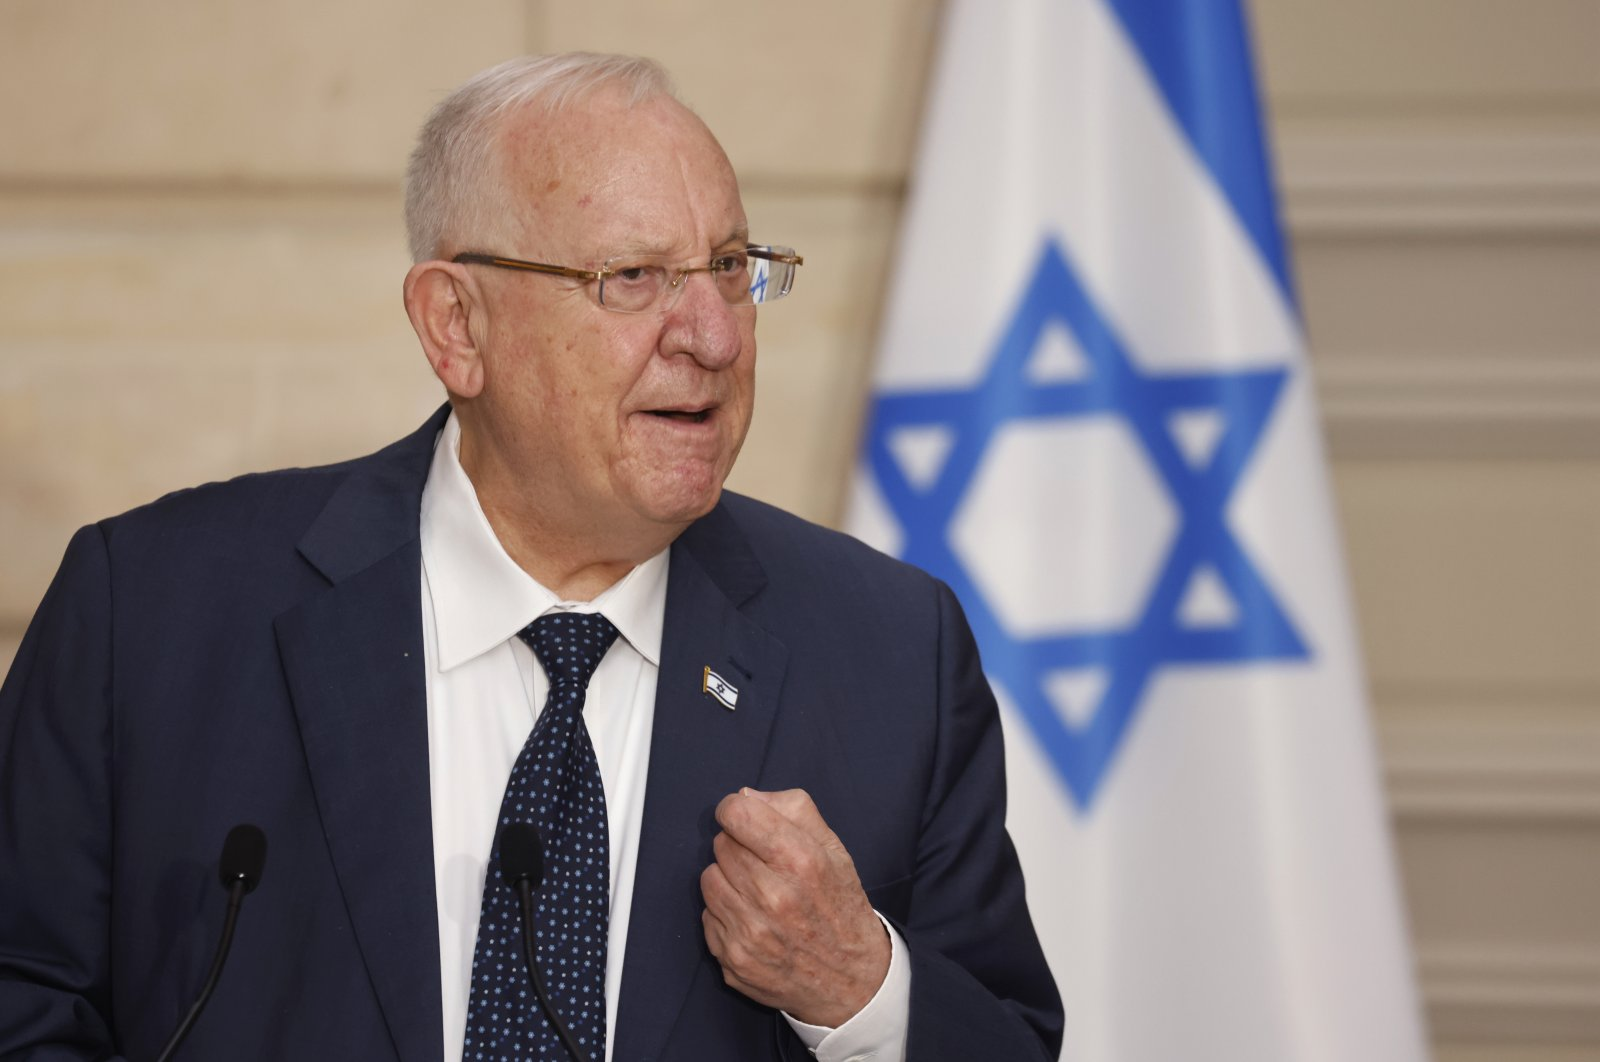 Israeli President Reuven Rivlin speaks during a joint press conference and working lunch with French President Emmanuel Macron, at the Elysee Palace, Paris, France, March 18, 2021. (AP Photo)